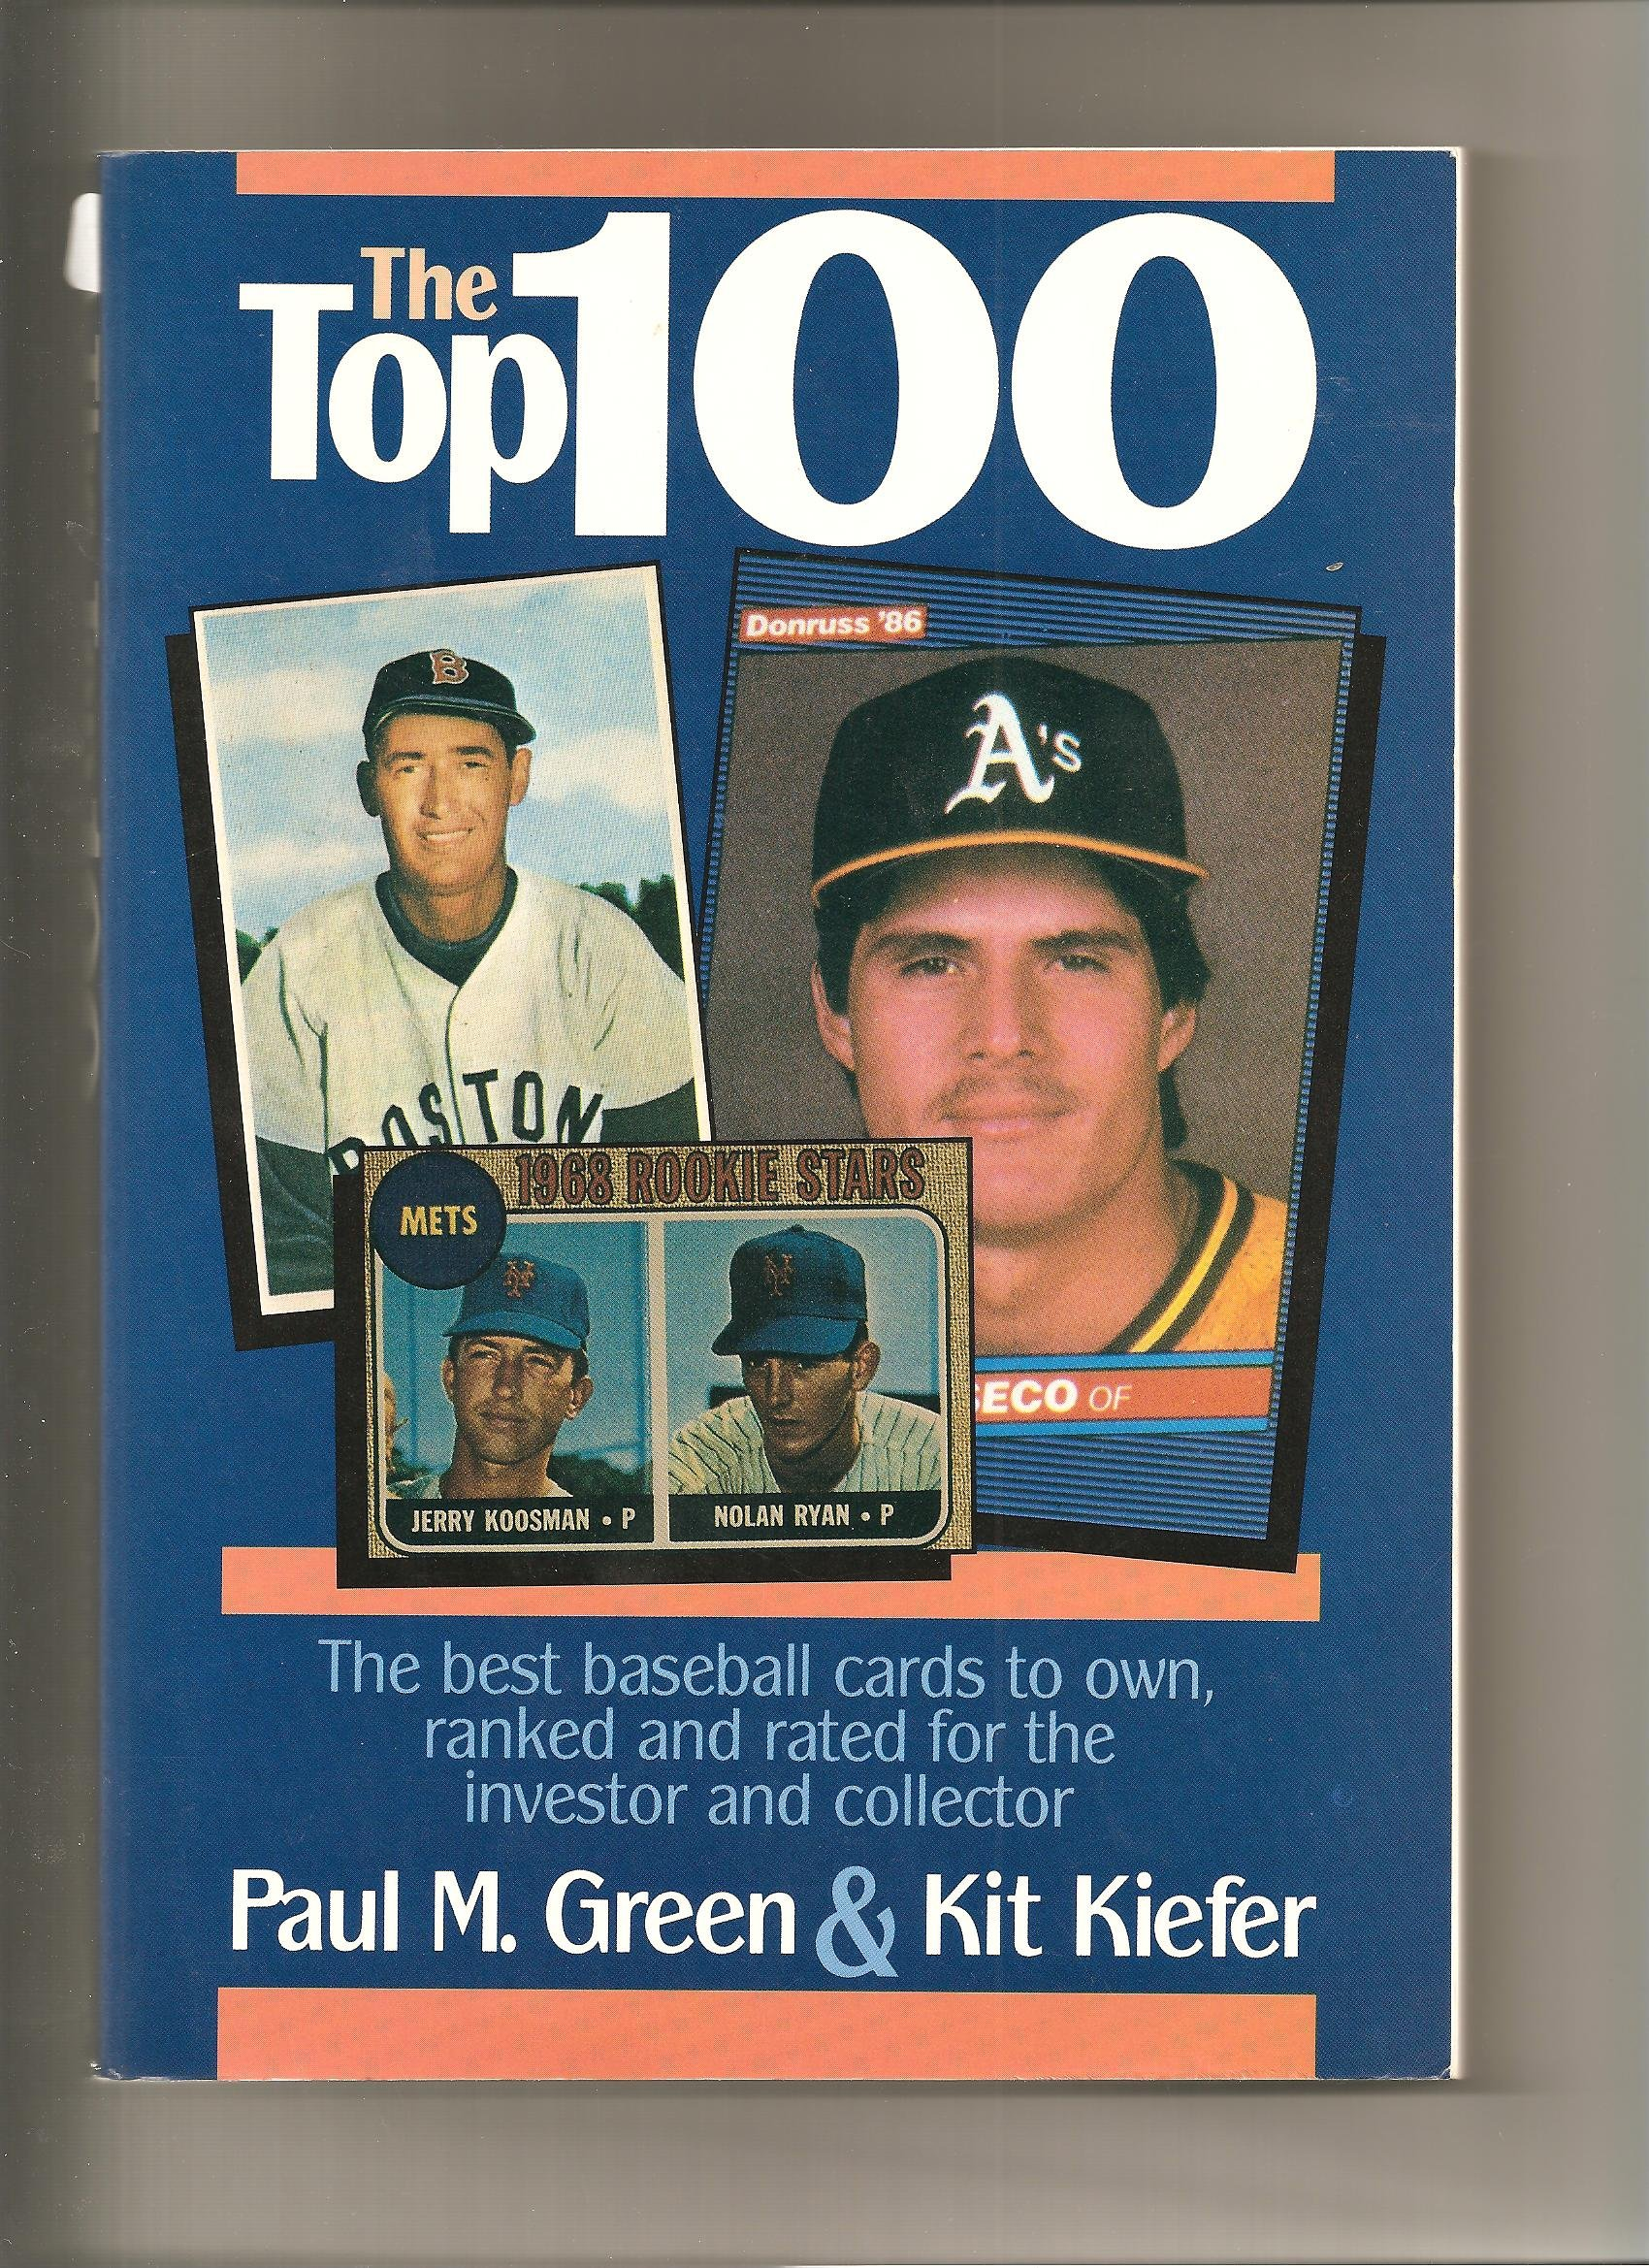 The Top 100 The Best Baseball Cards To Own Ranked And Rated For